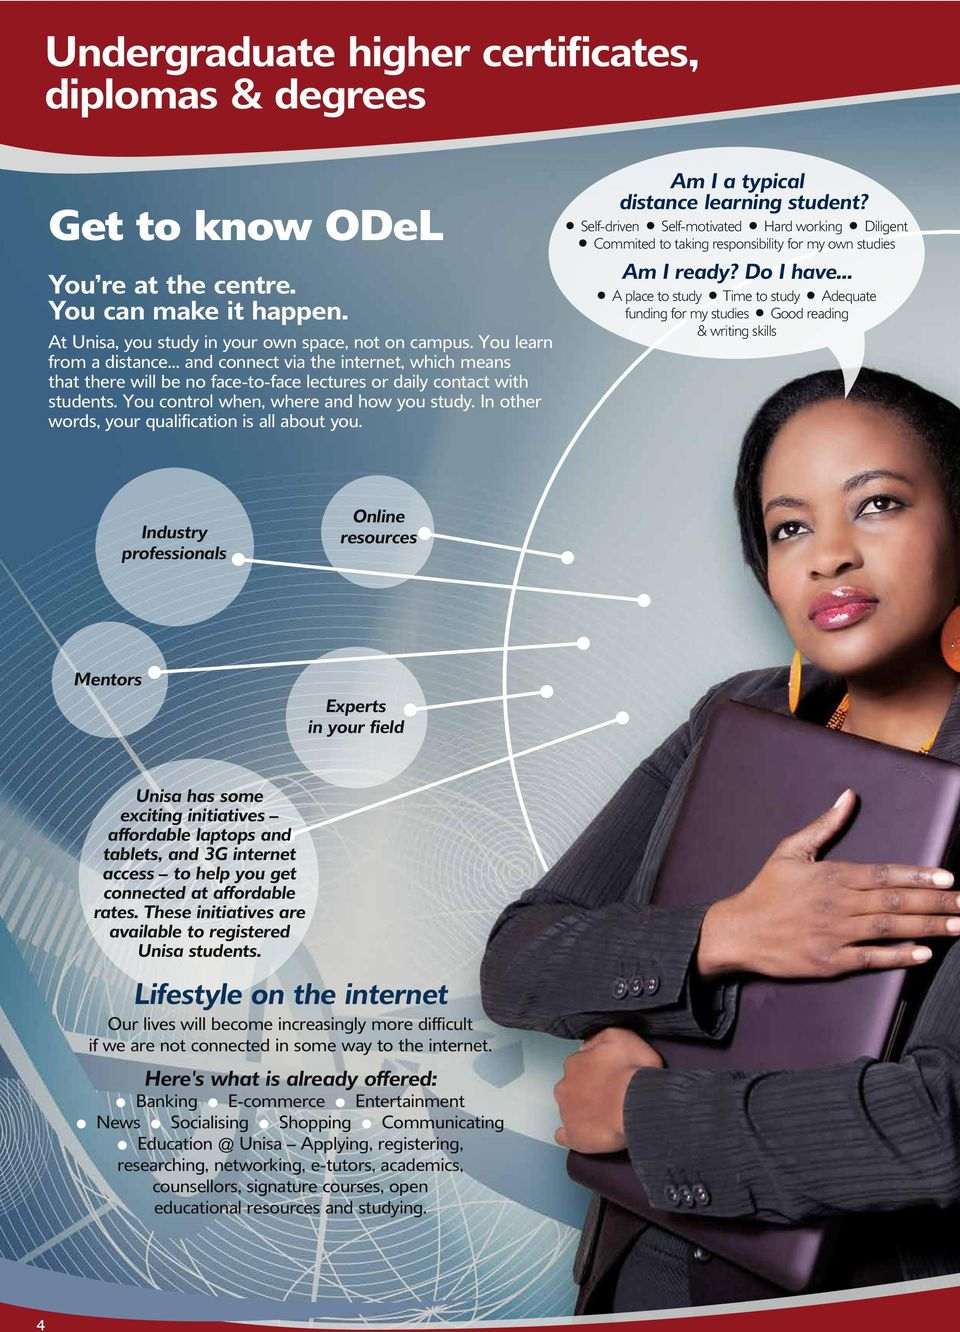 In other wds, your qualification is all about you. Am I a typical distance learning student?